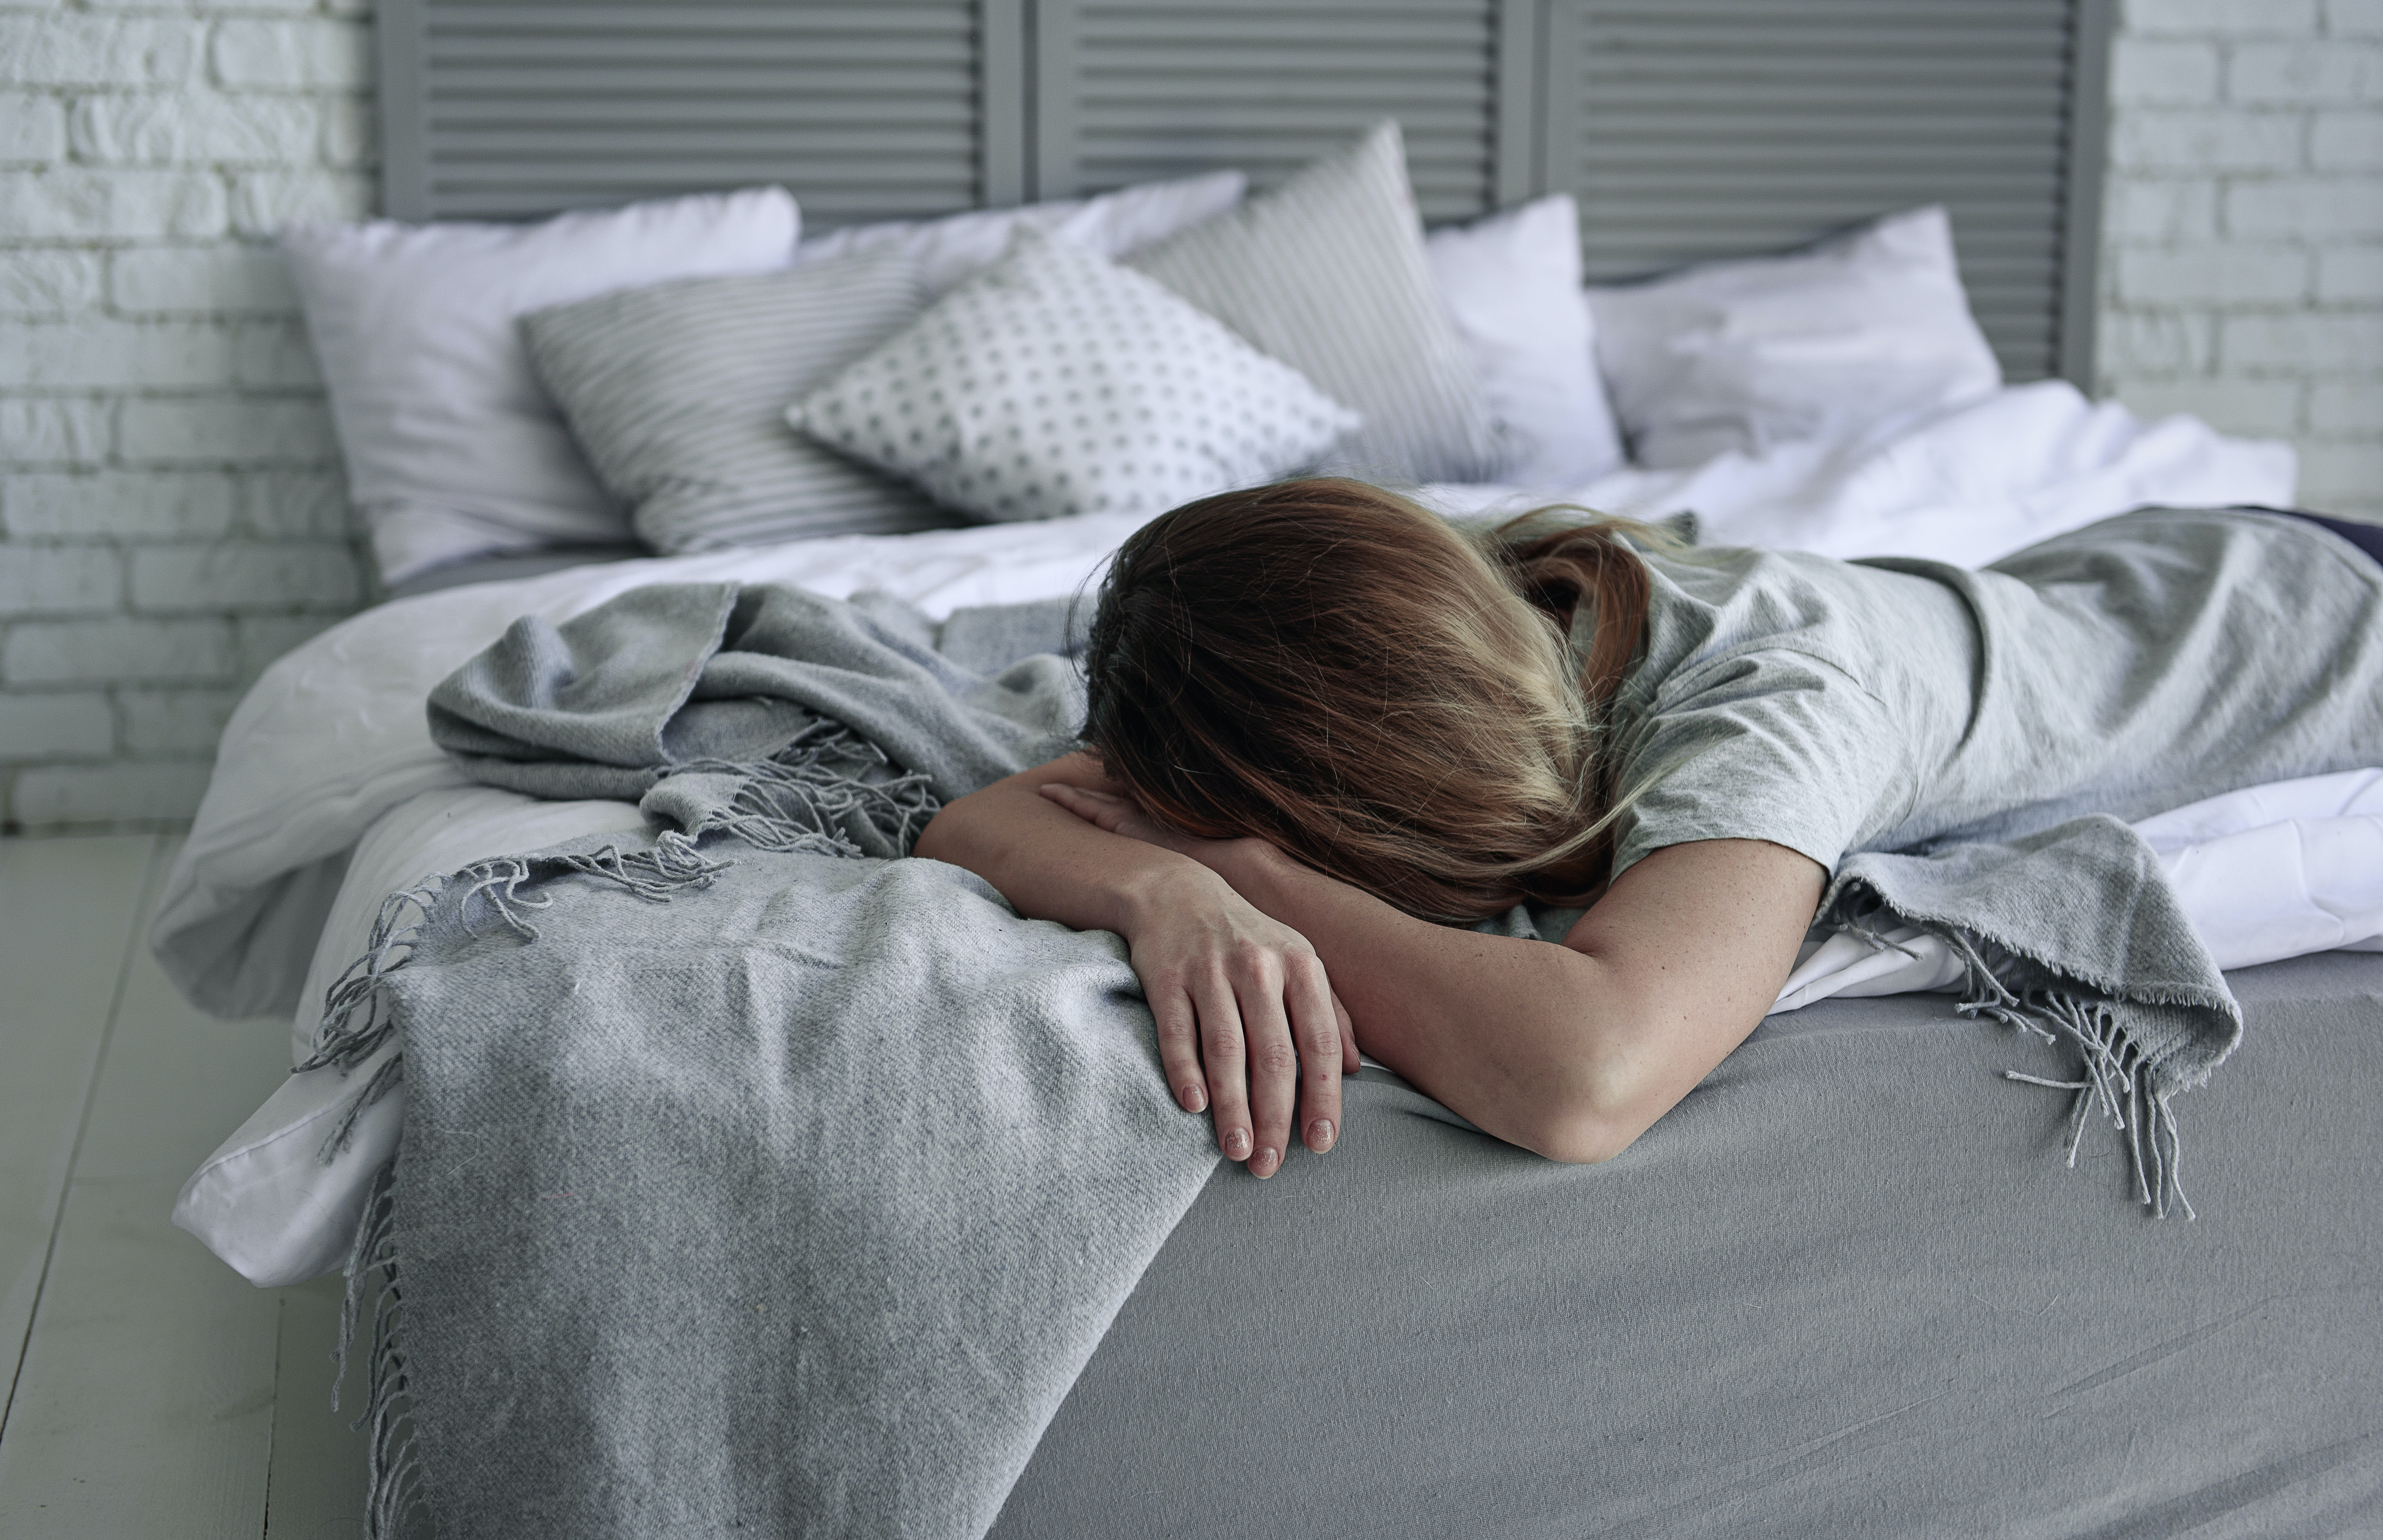 AAFU: I can't tell if my wife is depressed or just lazy